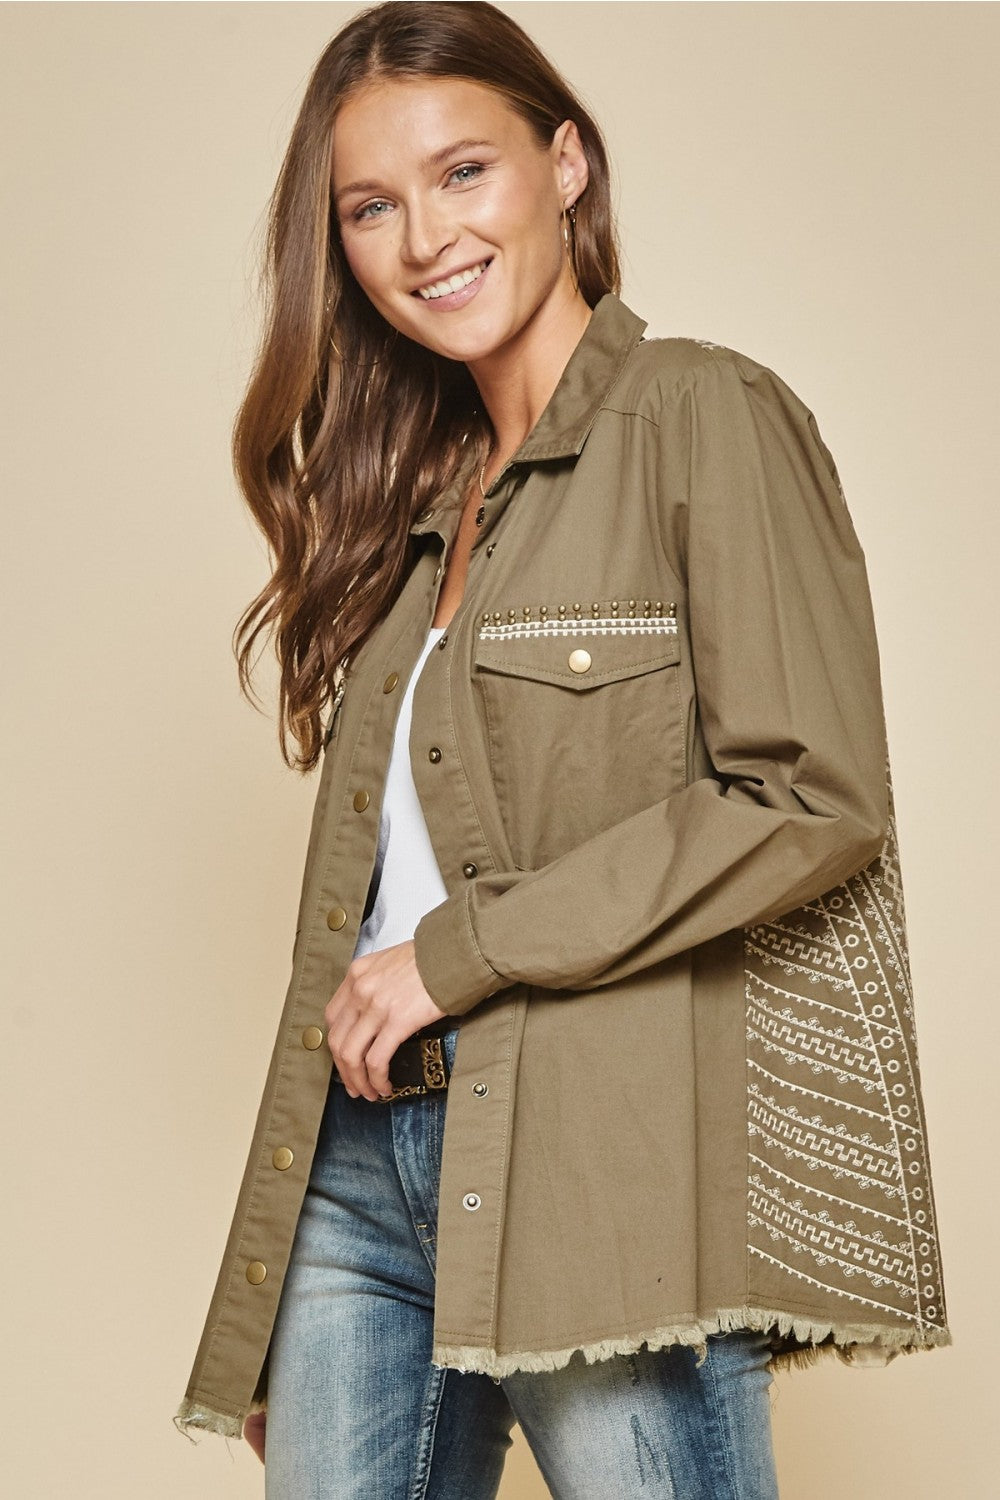 Military Jacket - The Dainty Cactus Boutique